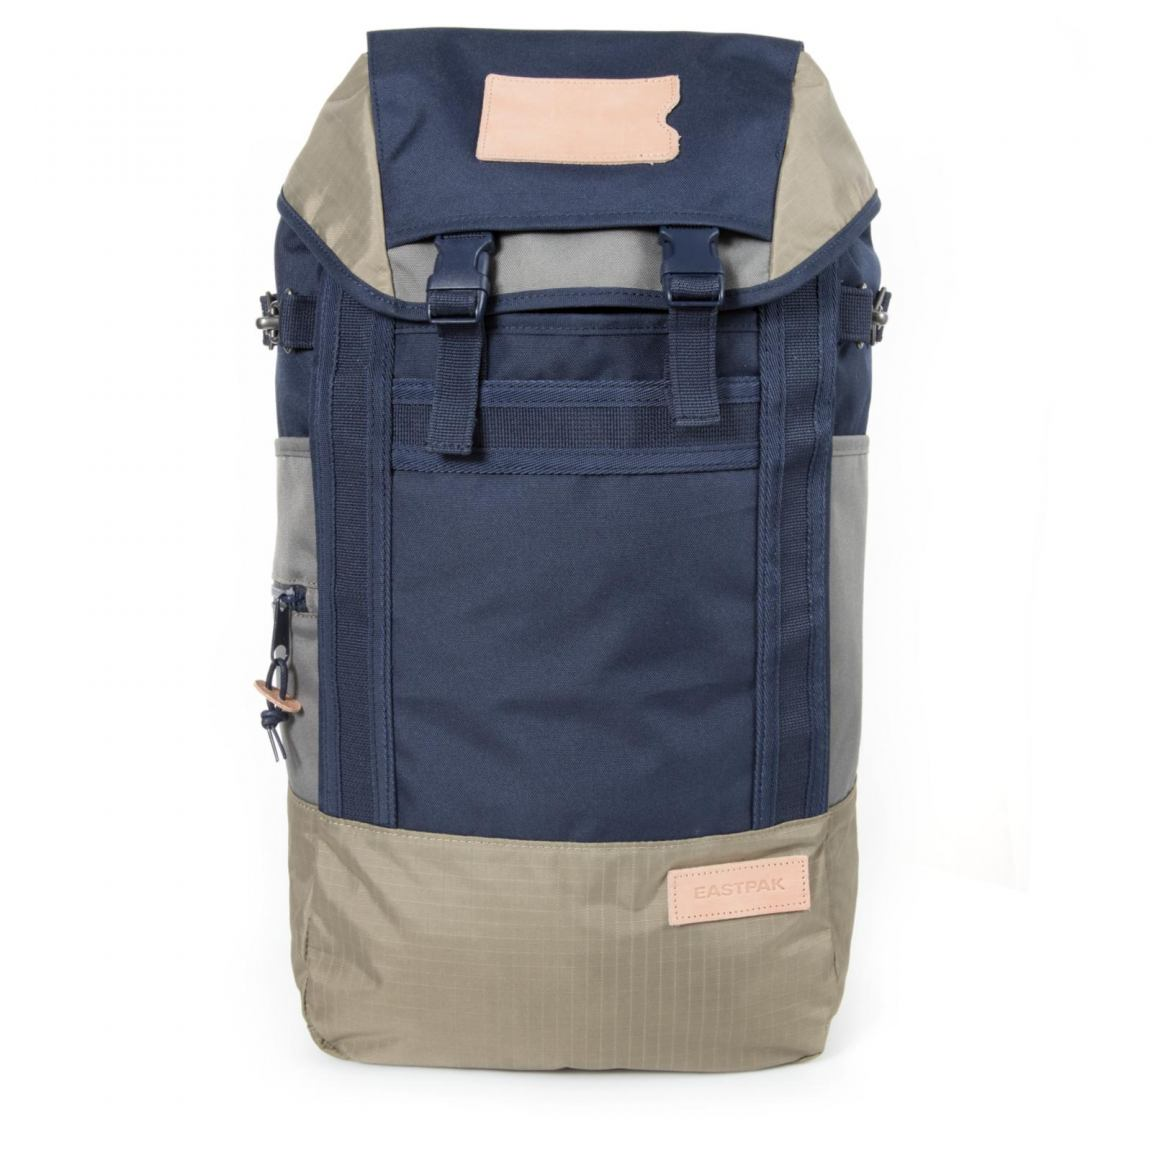 eastpak rucksack bust merge mix beige blau bags more. Black Bedroom Furniture Sets. Home Design Ideas